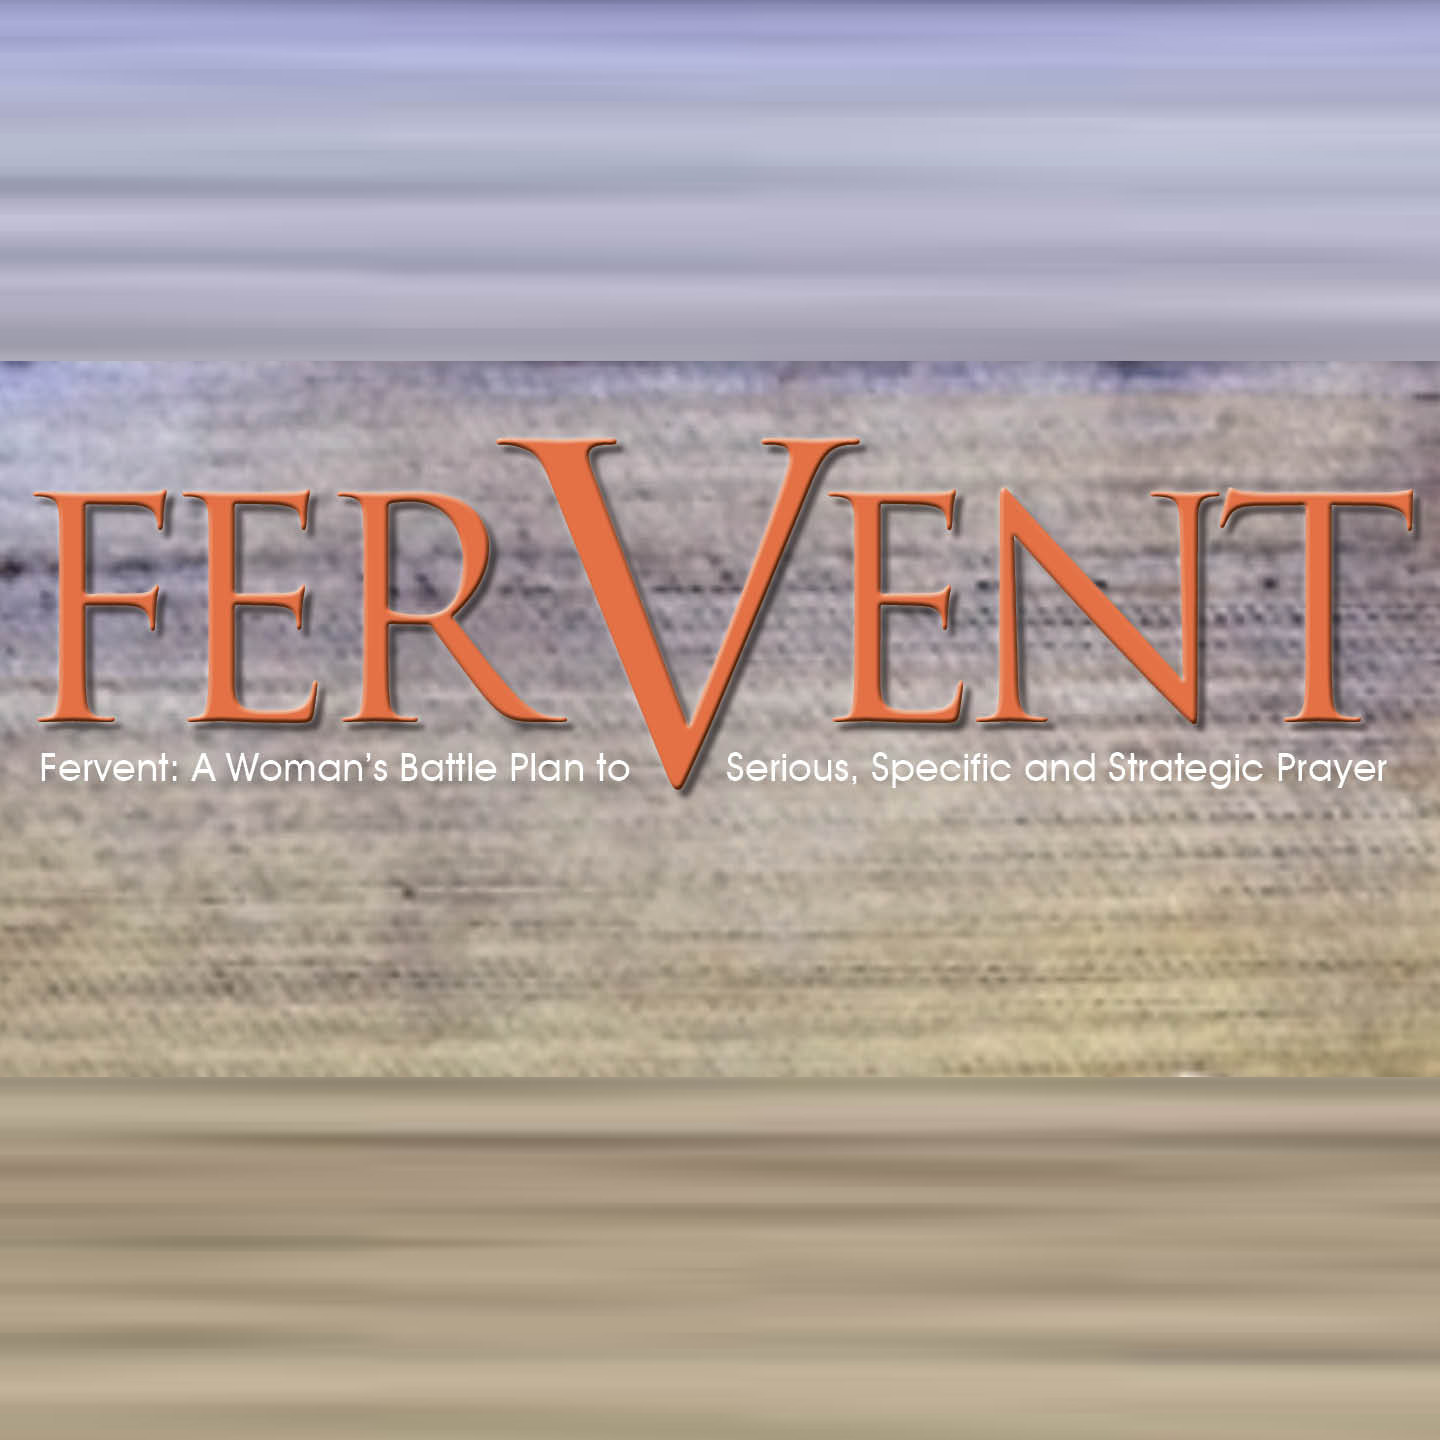 Fervent: A Womans Battle Plan to Serious, Specific, and Strategic Prayer